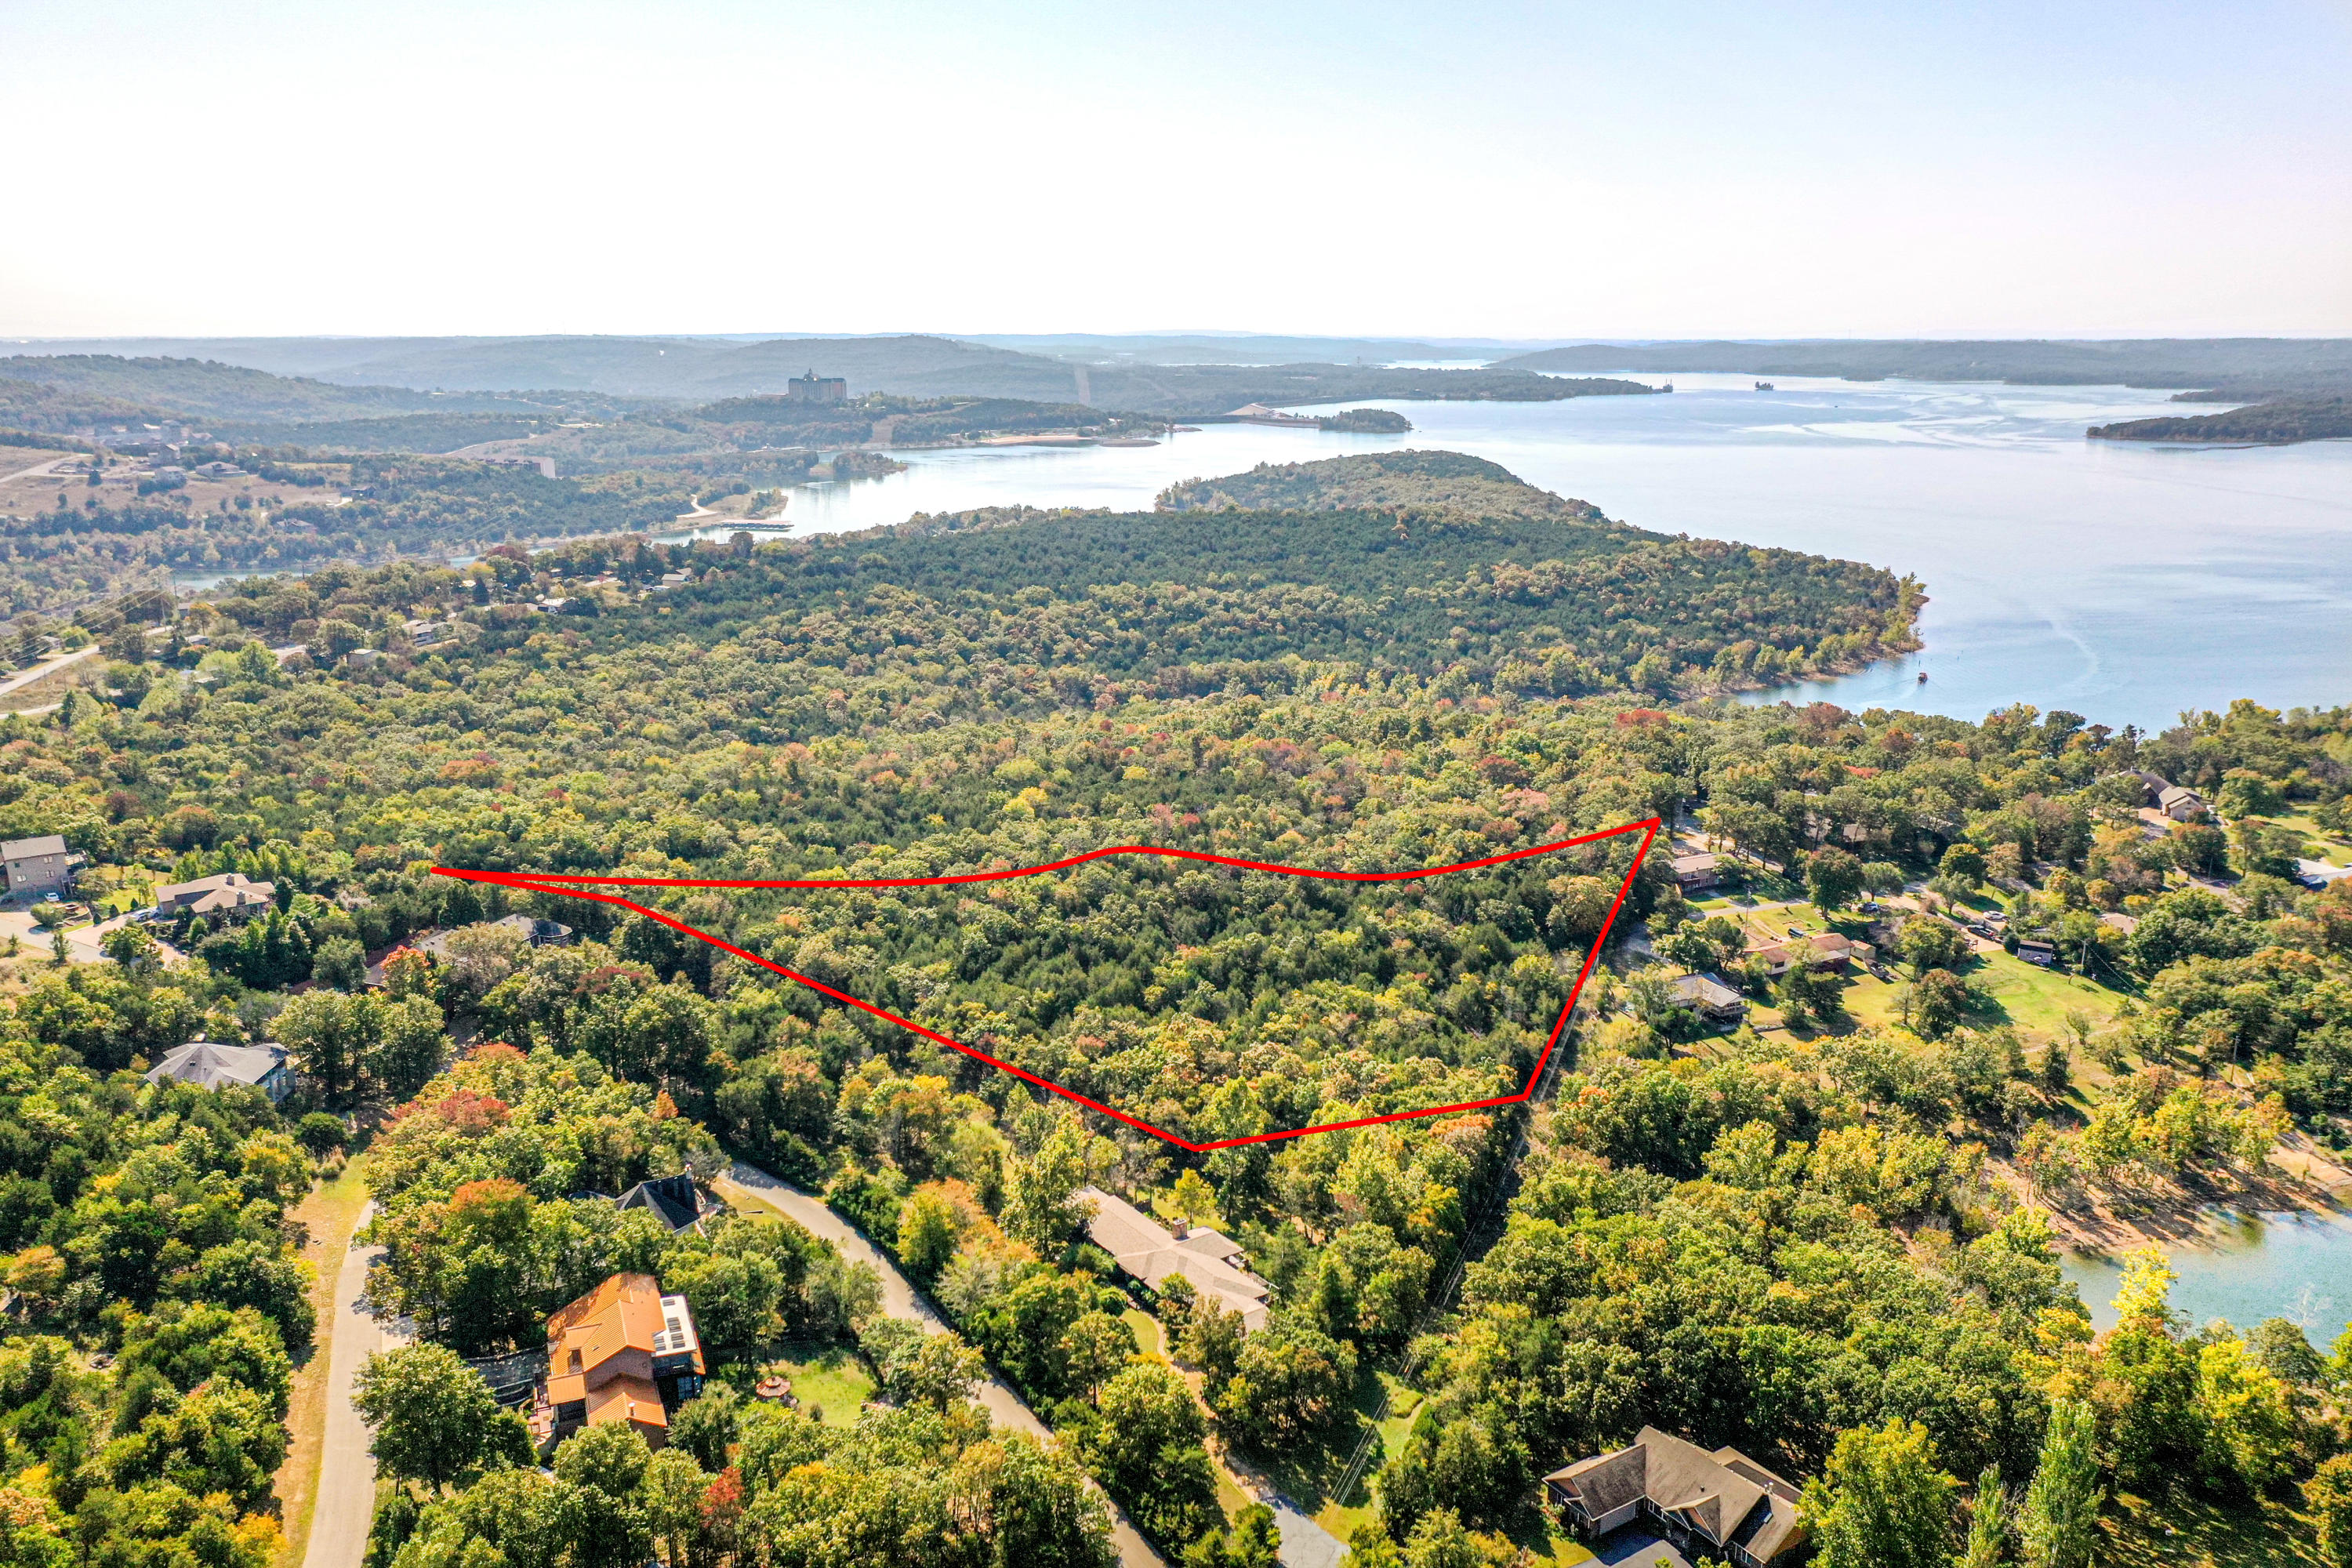 000 Timberline Point Road Branson, MO 65616